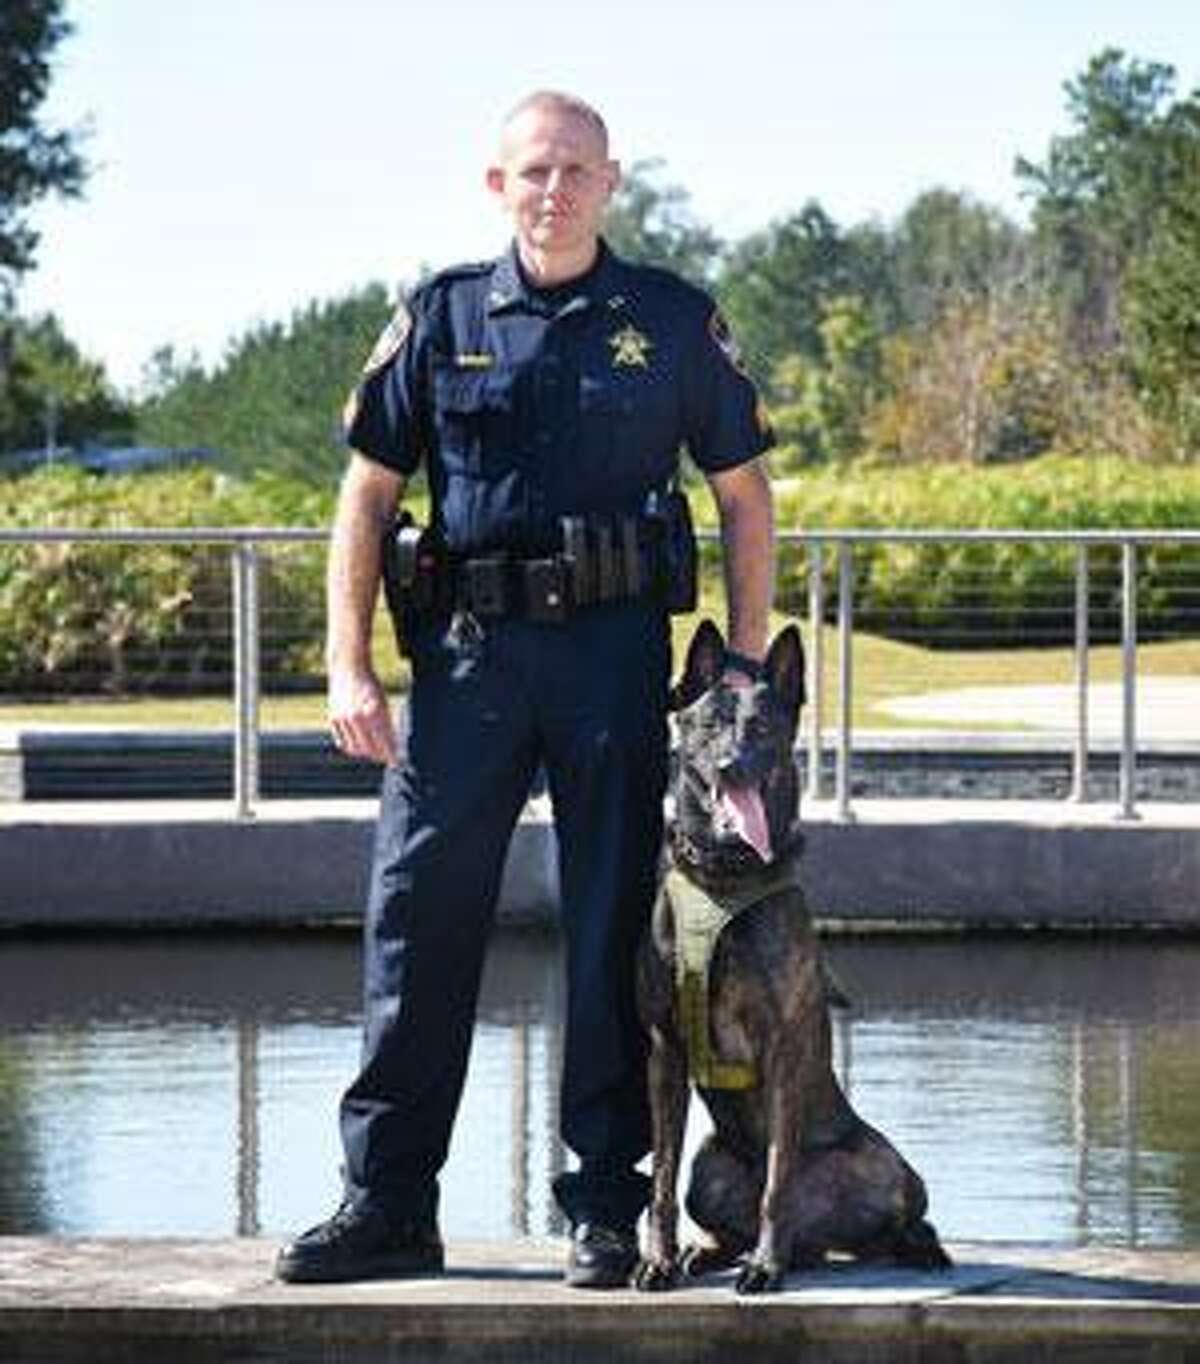 Sgt. David Birch and his canine partner Hummer.